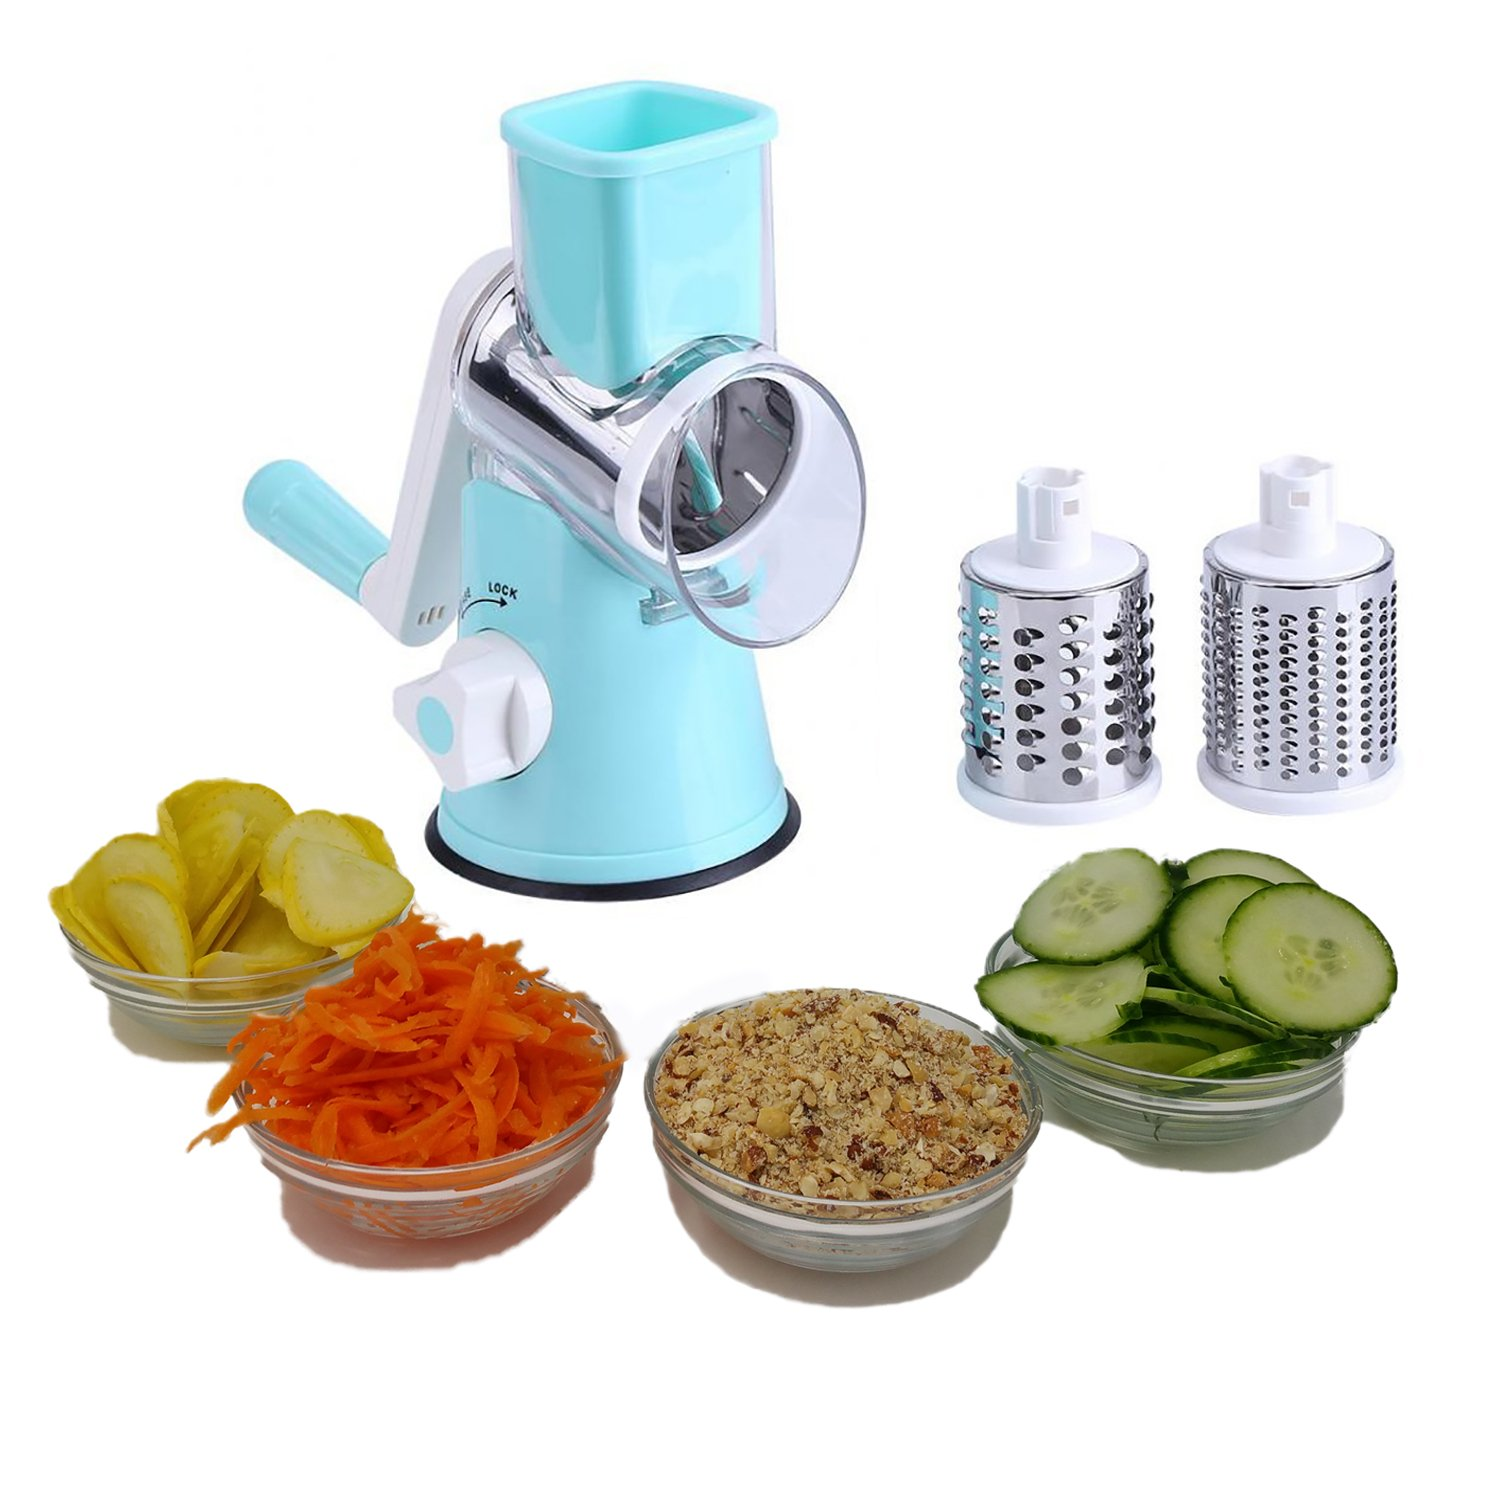 Vegetable Chopper and Cheese Grater with Suction By Famco Fitness | Vegetable Cheese Slicer, Food Shredder, Potato Shredder, Nut Grinder - 3 Stainless Steel Round Blades - Dishwasher Safe